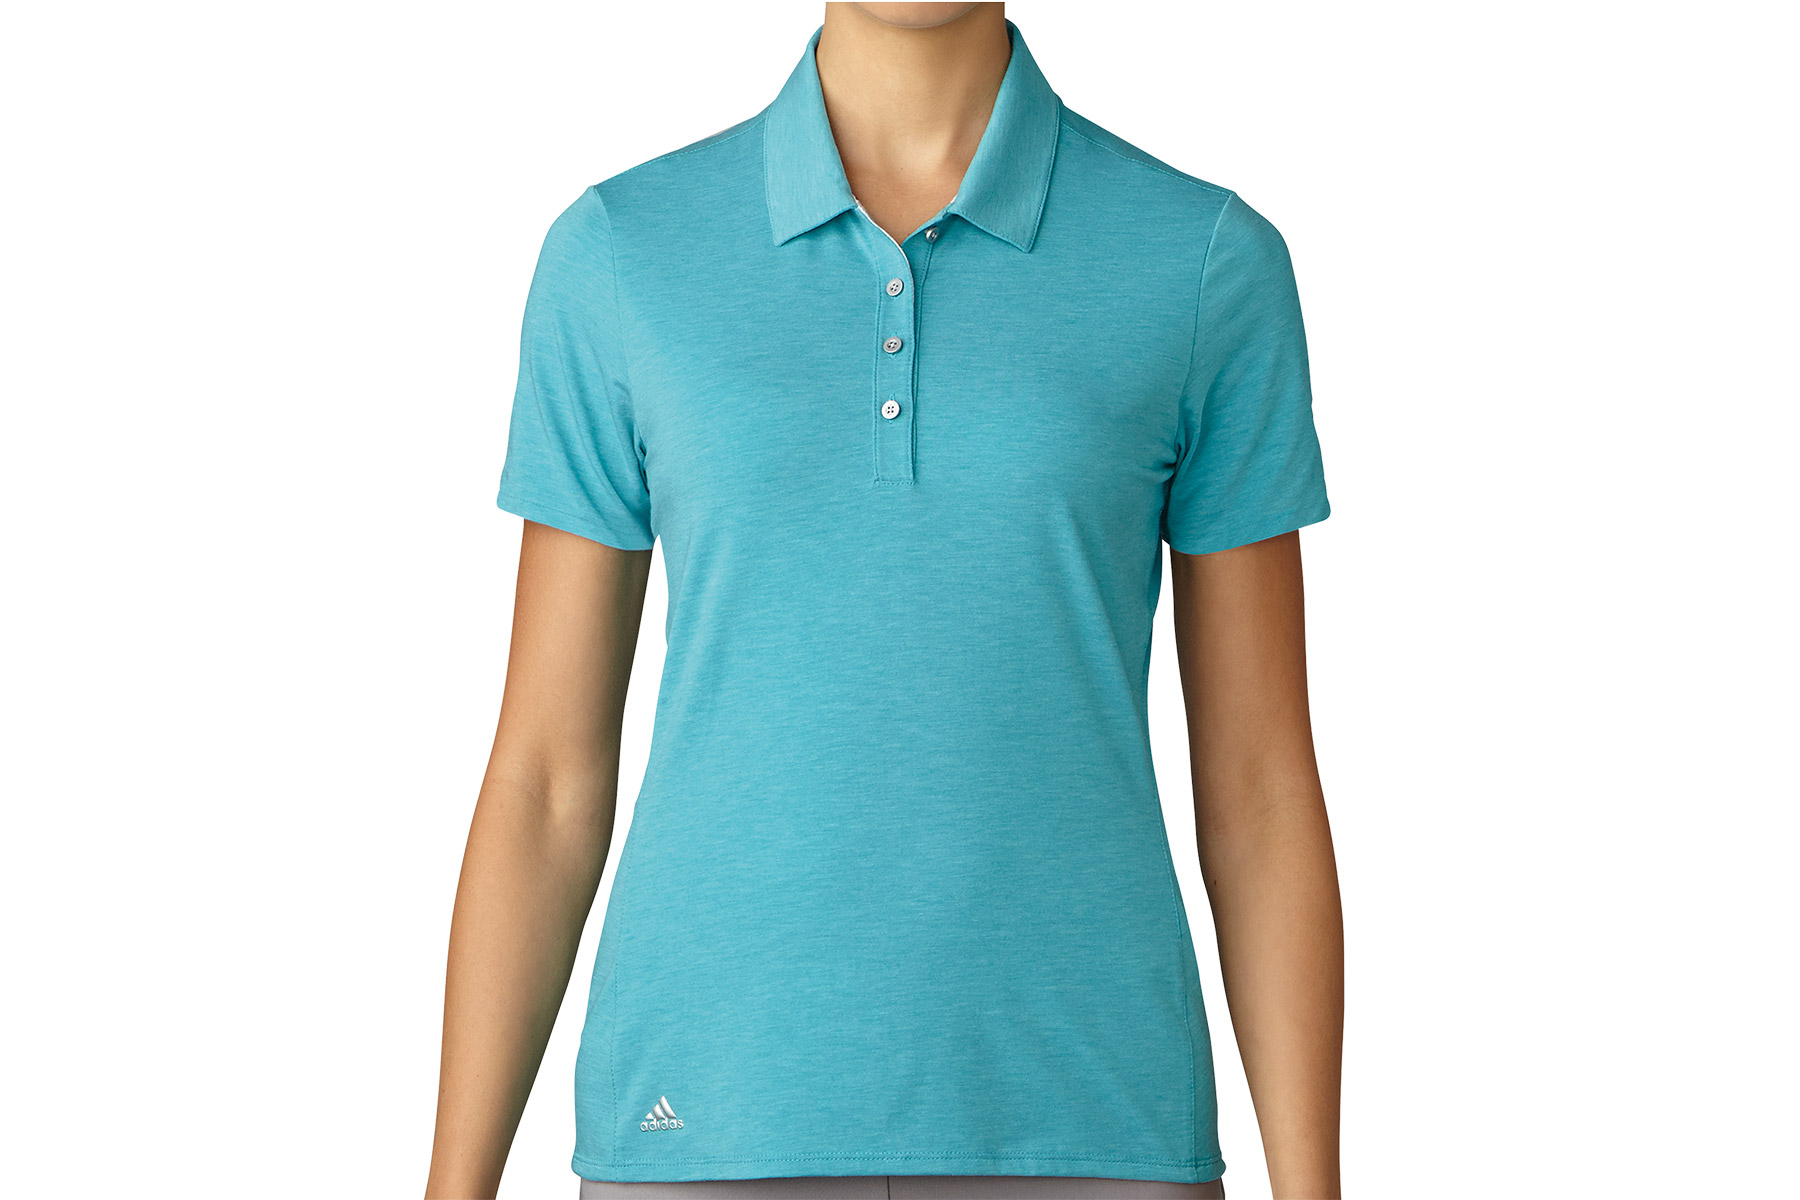 Adidas Golf Ladies Essentials Cotton Hand Polo Shirt